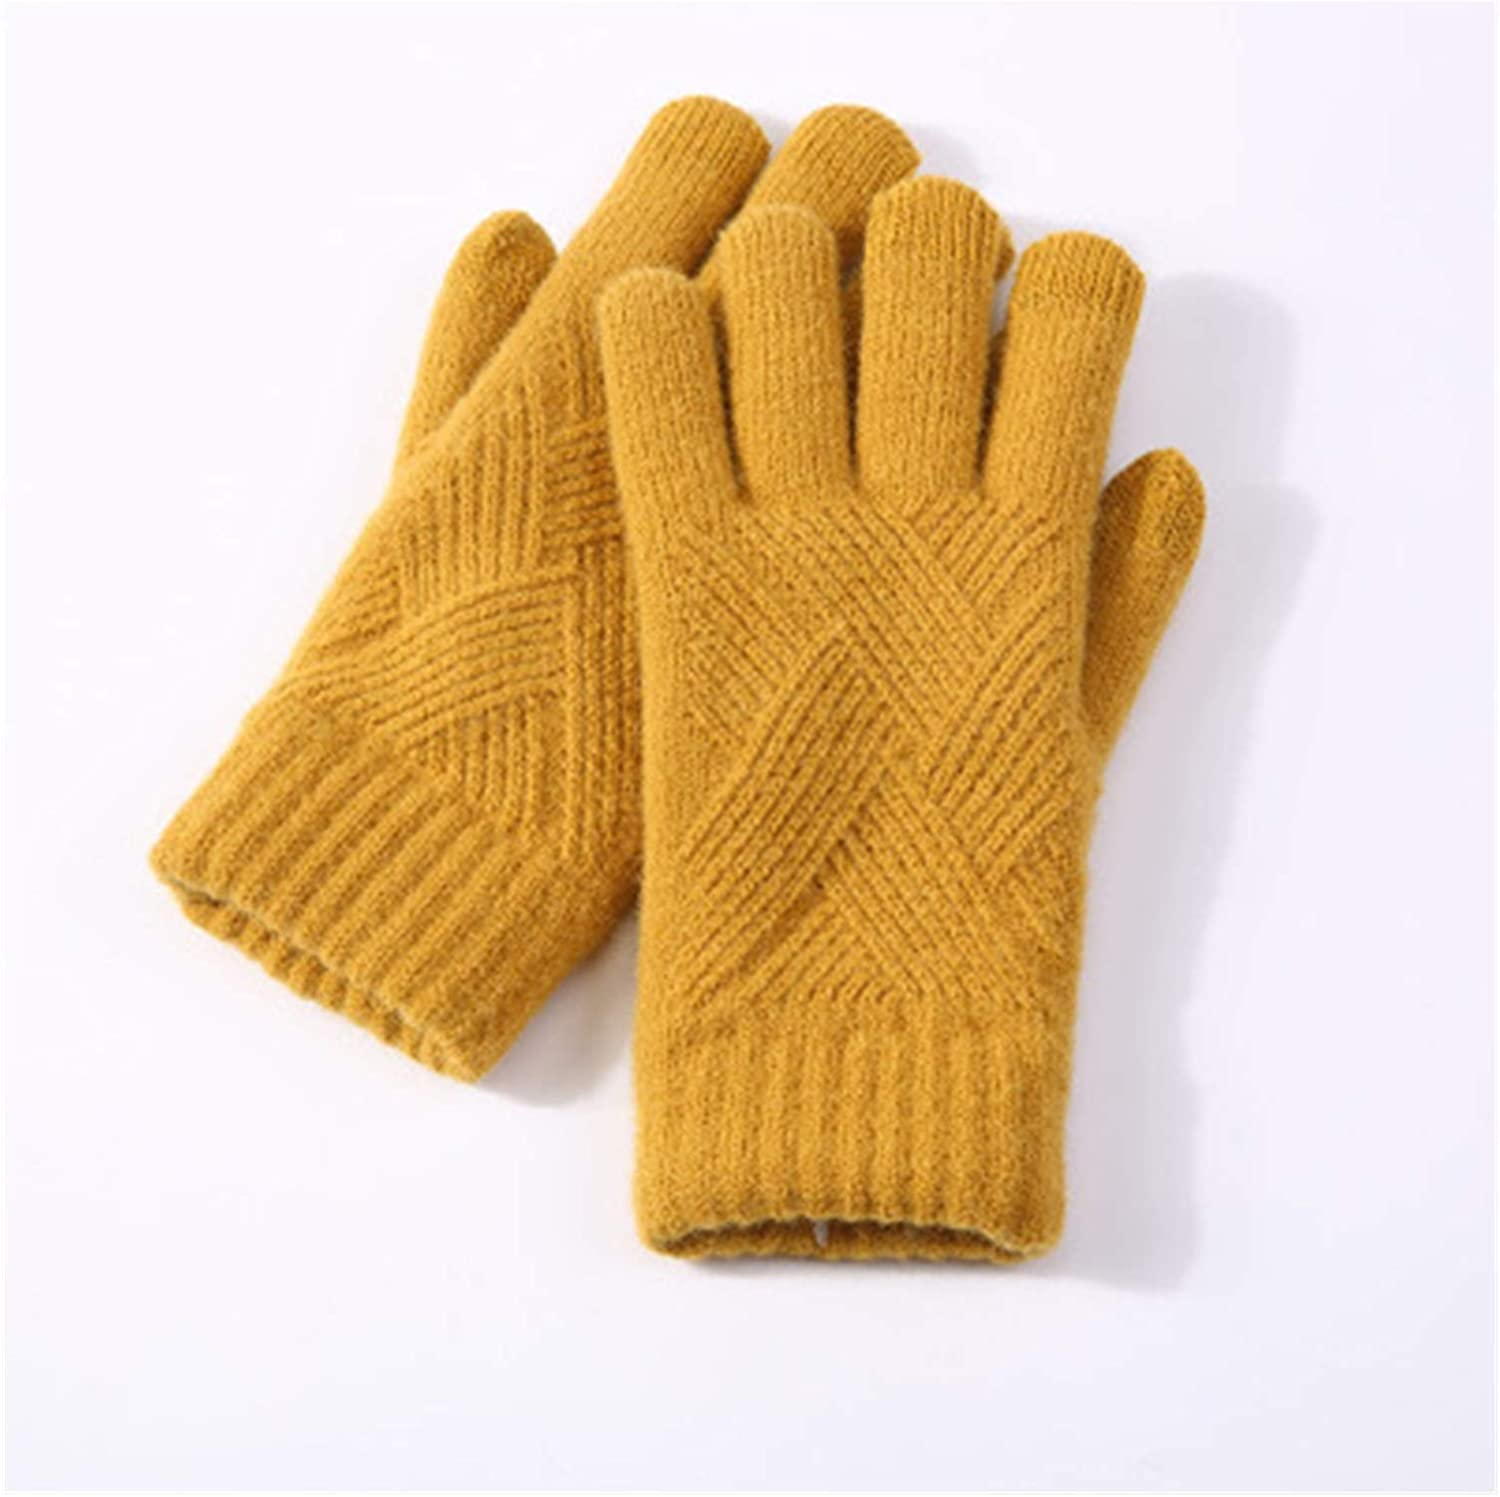 Lace Gloves Female Winter Warm Knitted Full Finger Gloves Men Solid Wool Touchscreen Gloves Women Thick Warm Cycling Driving Gloves (Farbe : Yellow)